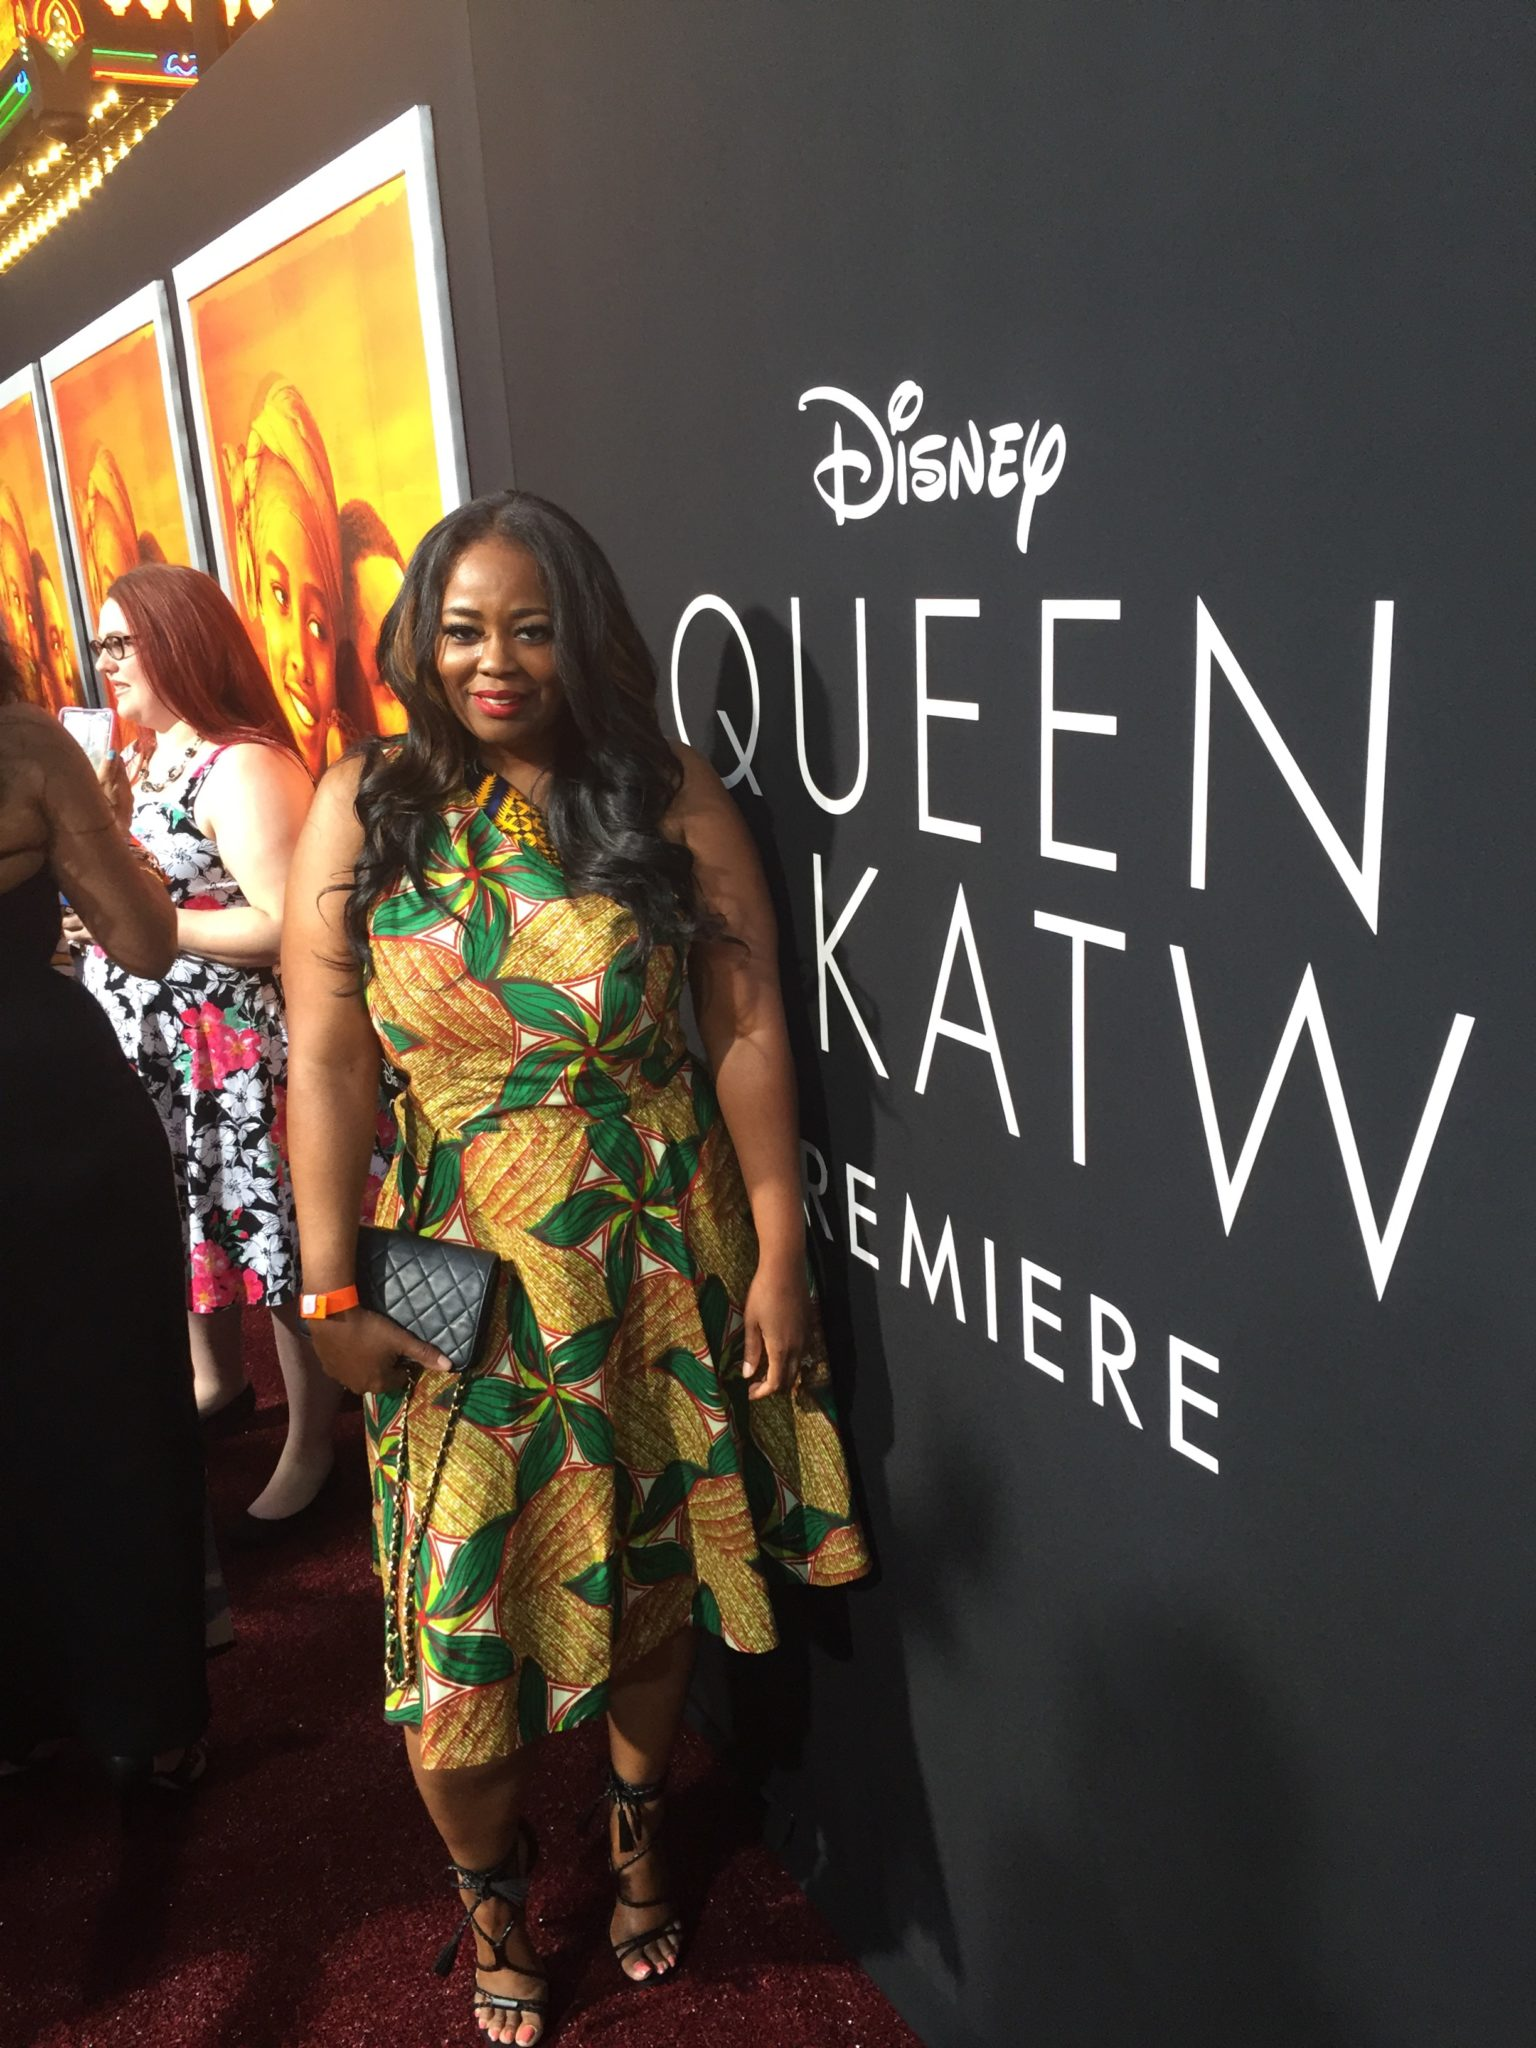 My Red Carpet Experience At Disney's 'Queen Of Katwe' Hollywood Premiere